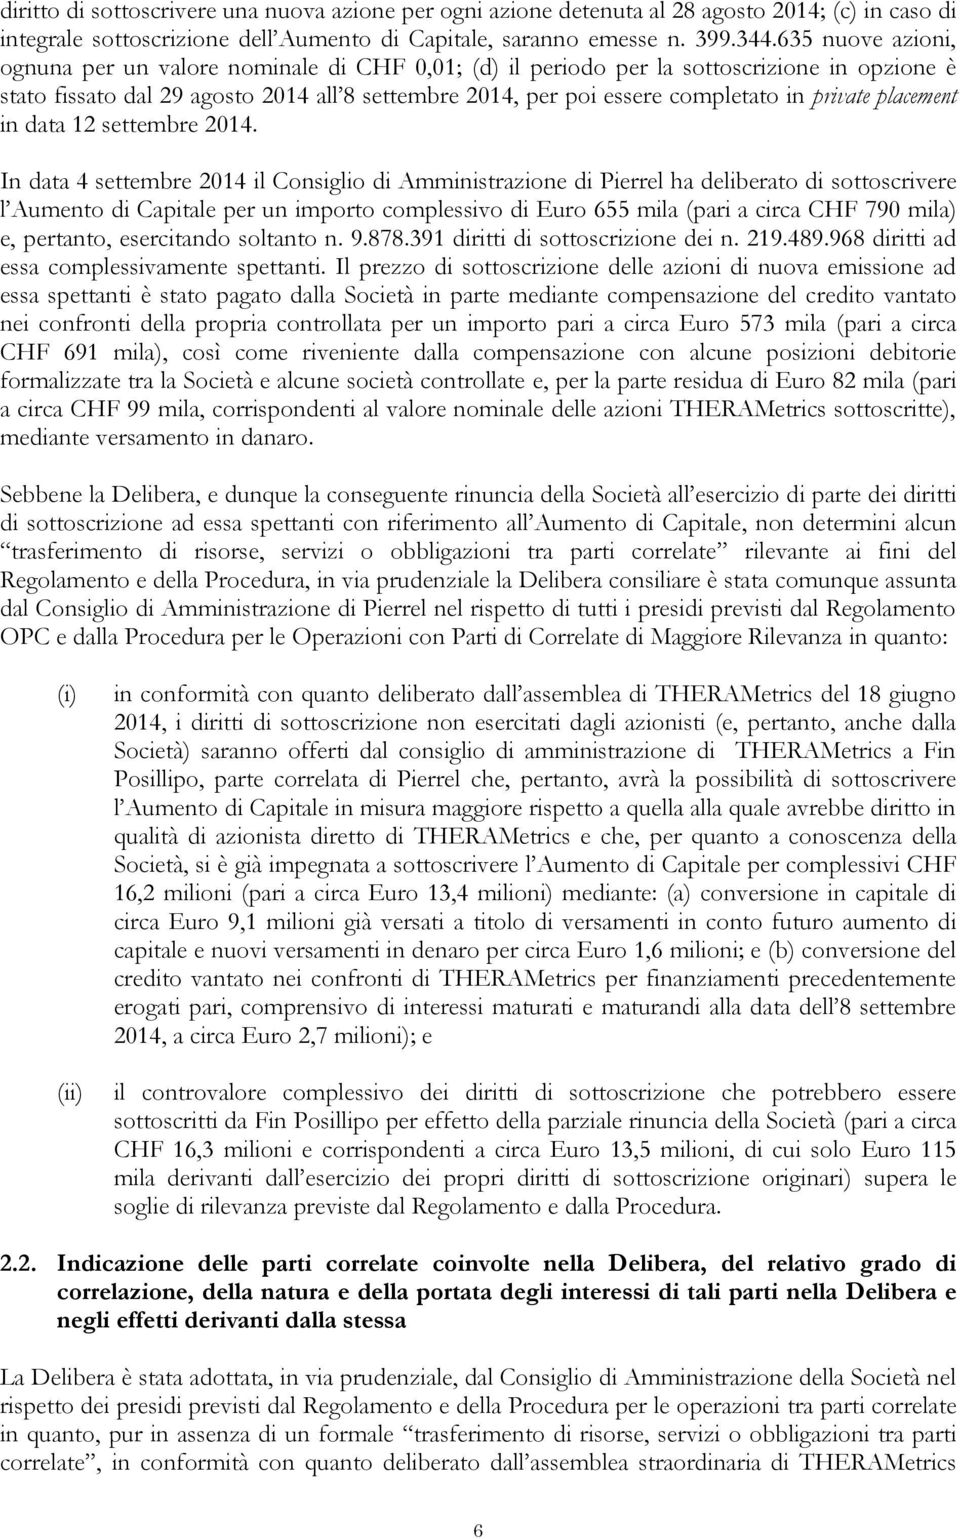 private placement in data 12 settembre 2014.